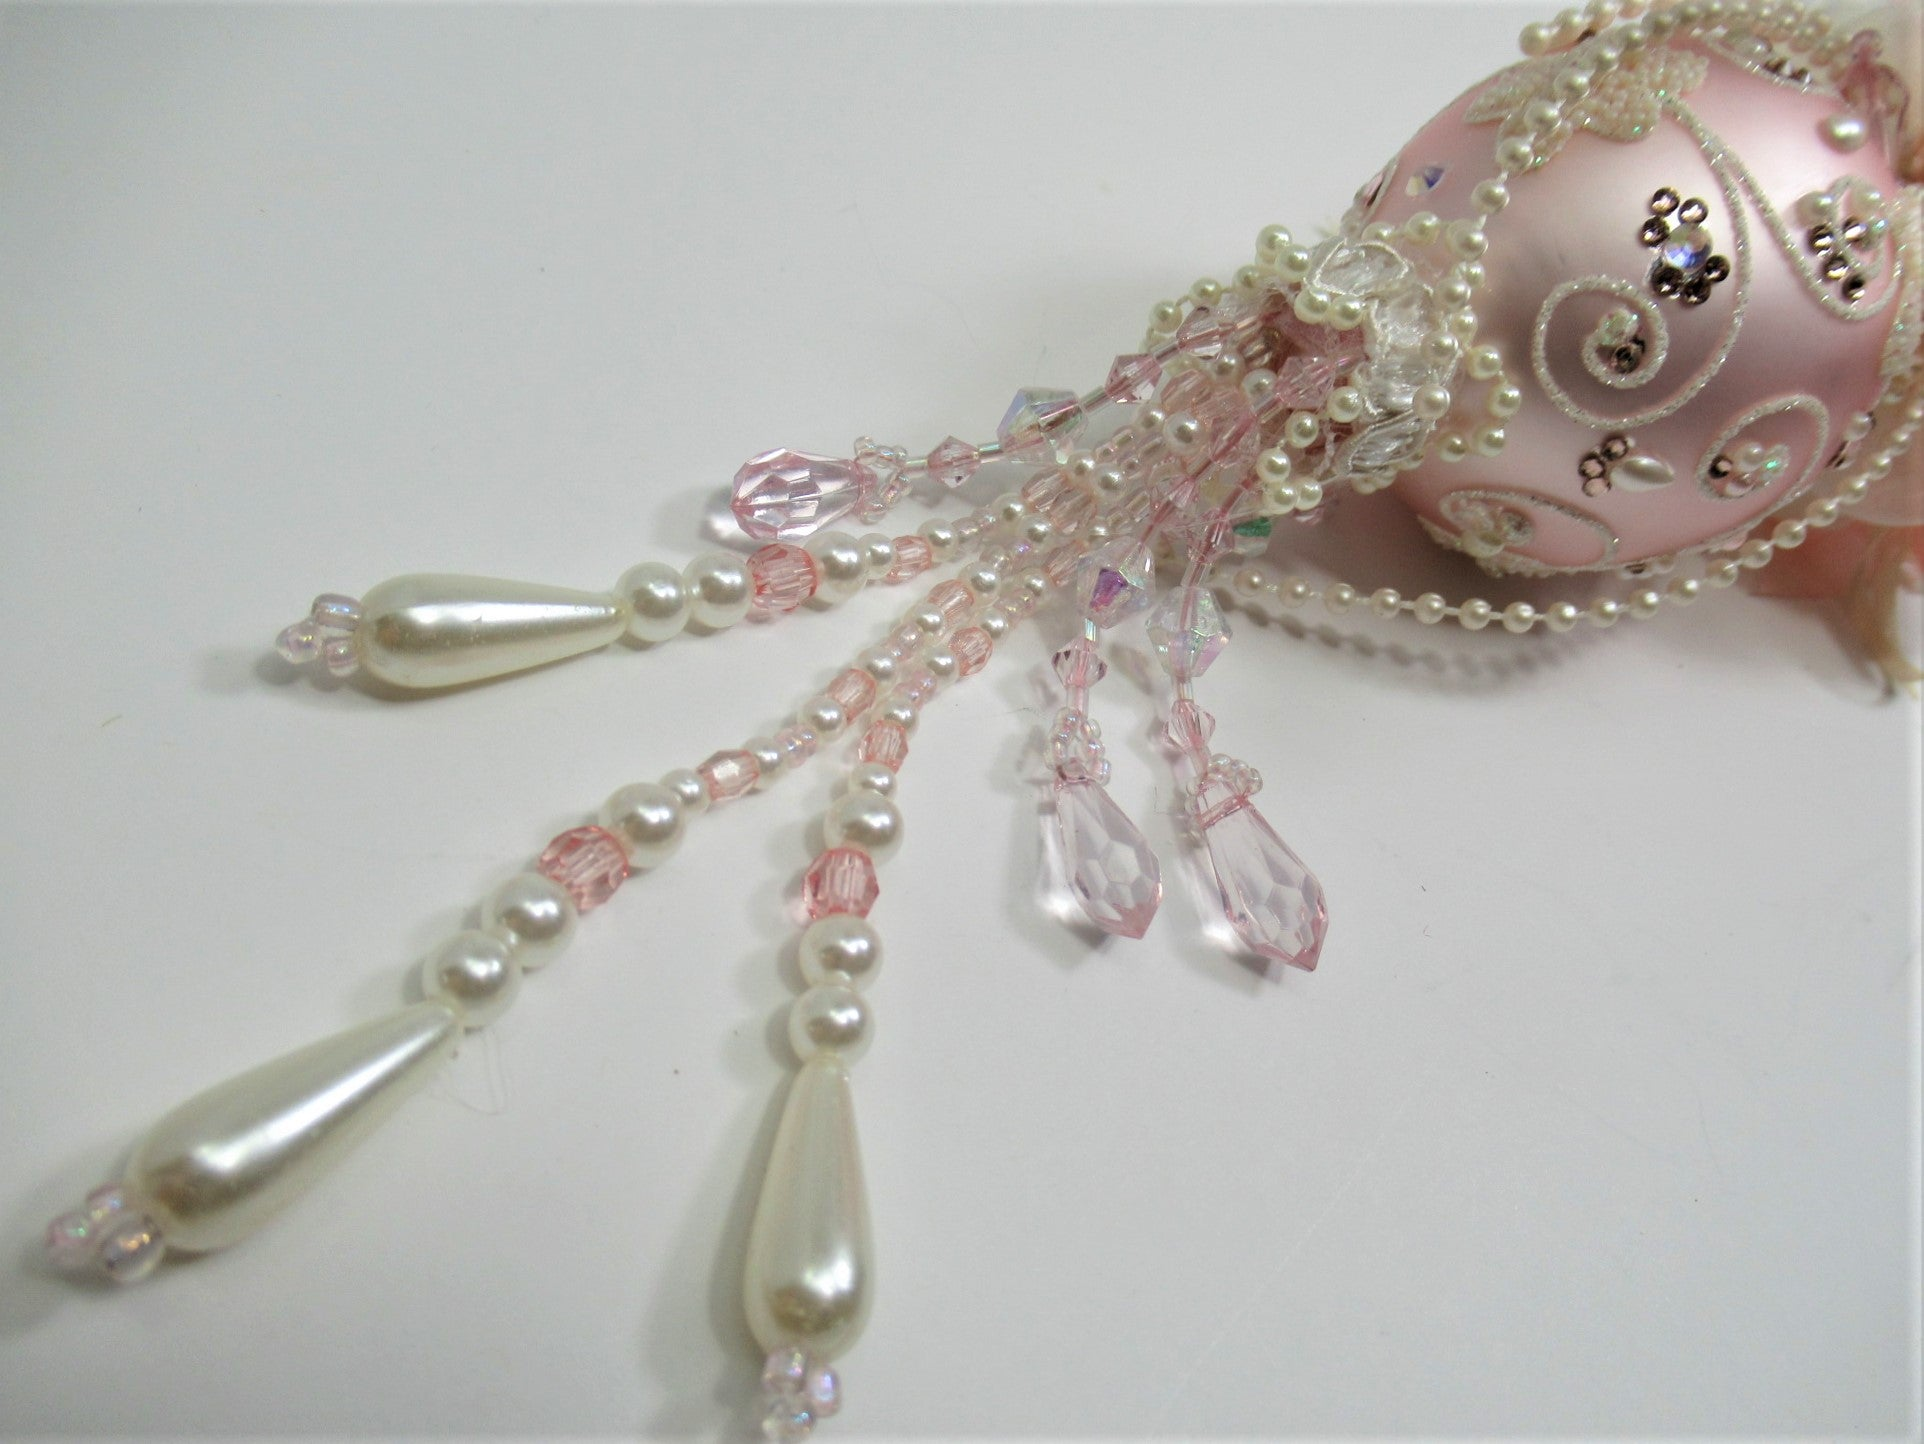 Pale Pink and Ivory Small But Tall Beaded Victorian Ornament with 102 Swarvoski Crystals and Pearls - Odyssey Creations